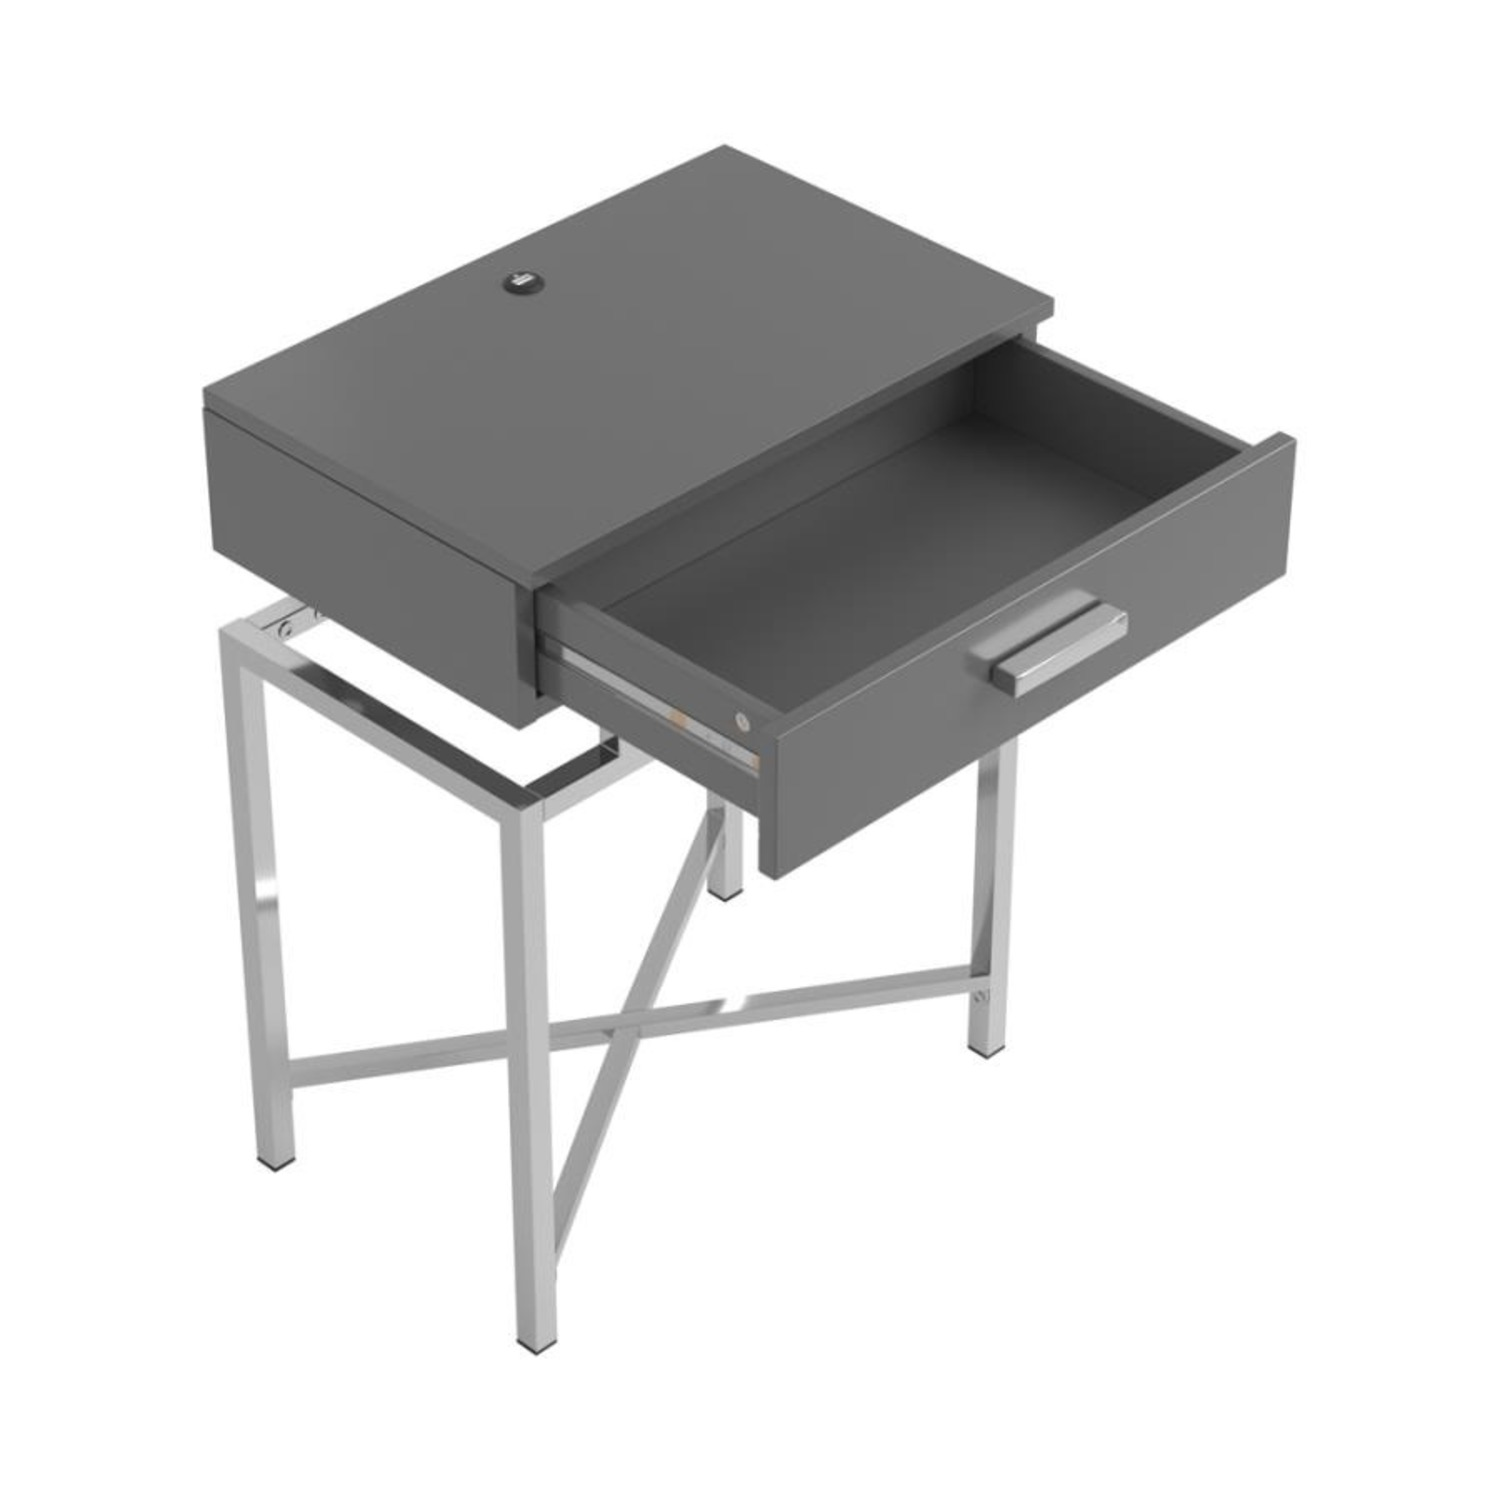 Accent Table In Grey High Gloss Finish - image-6